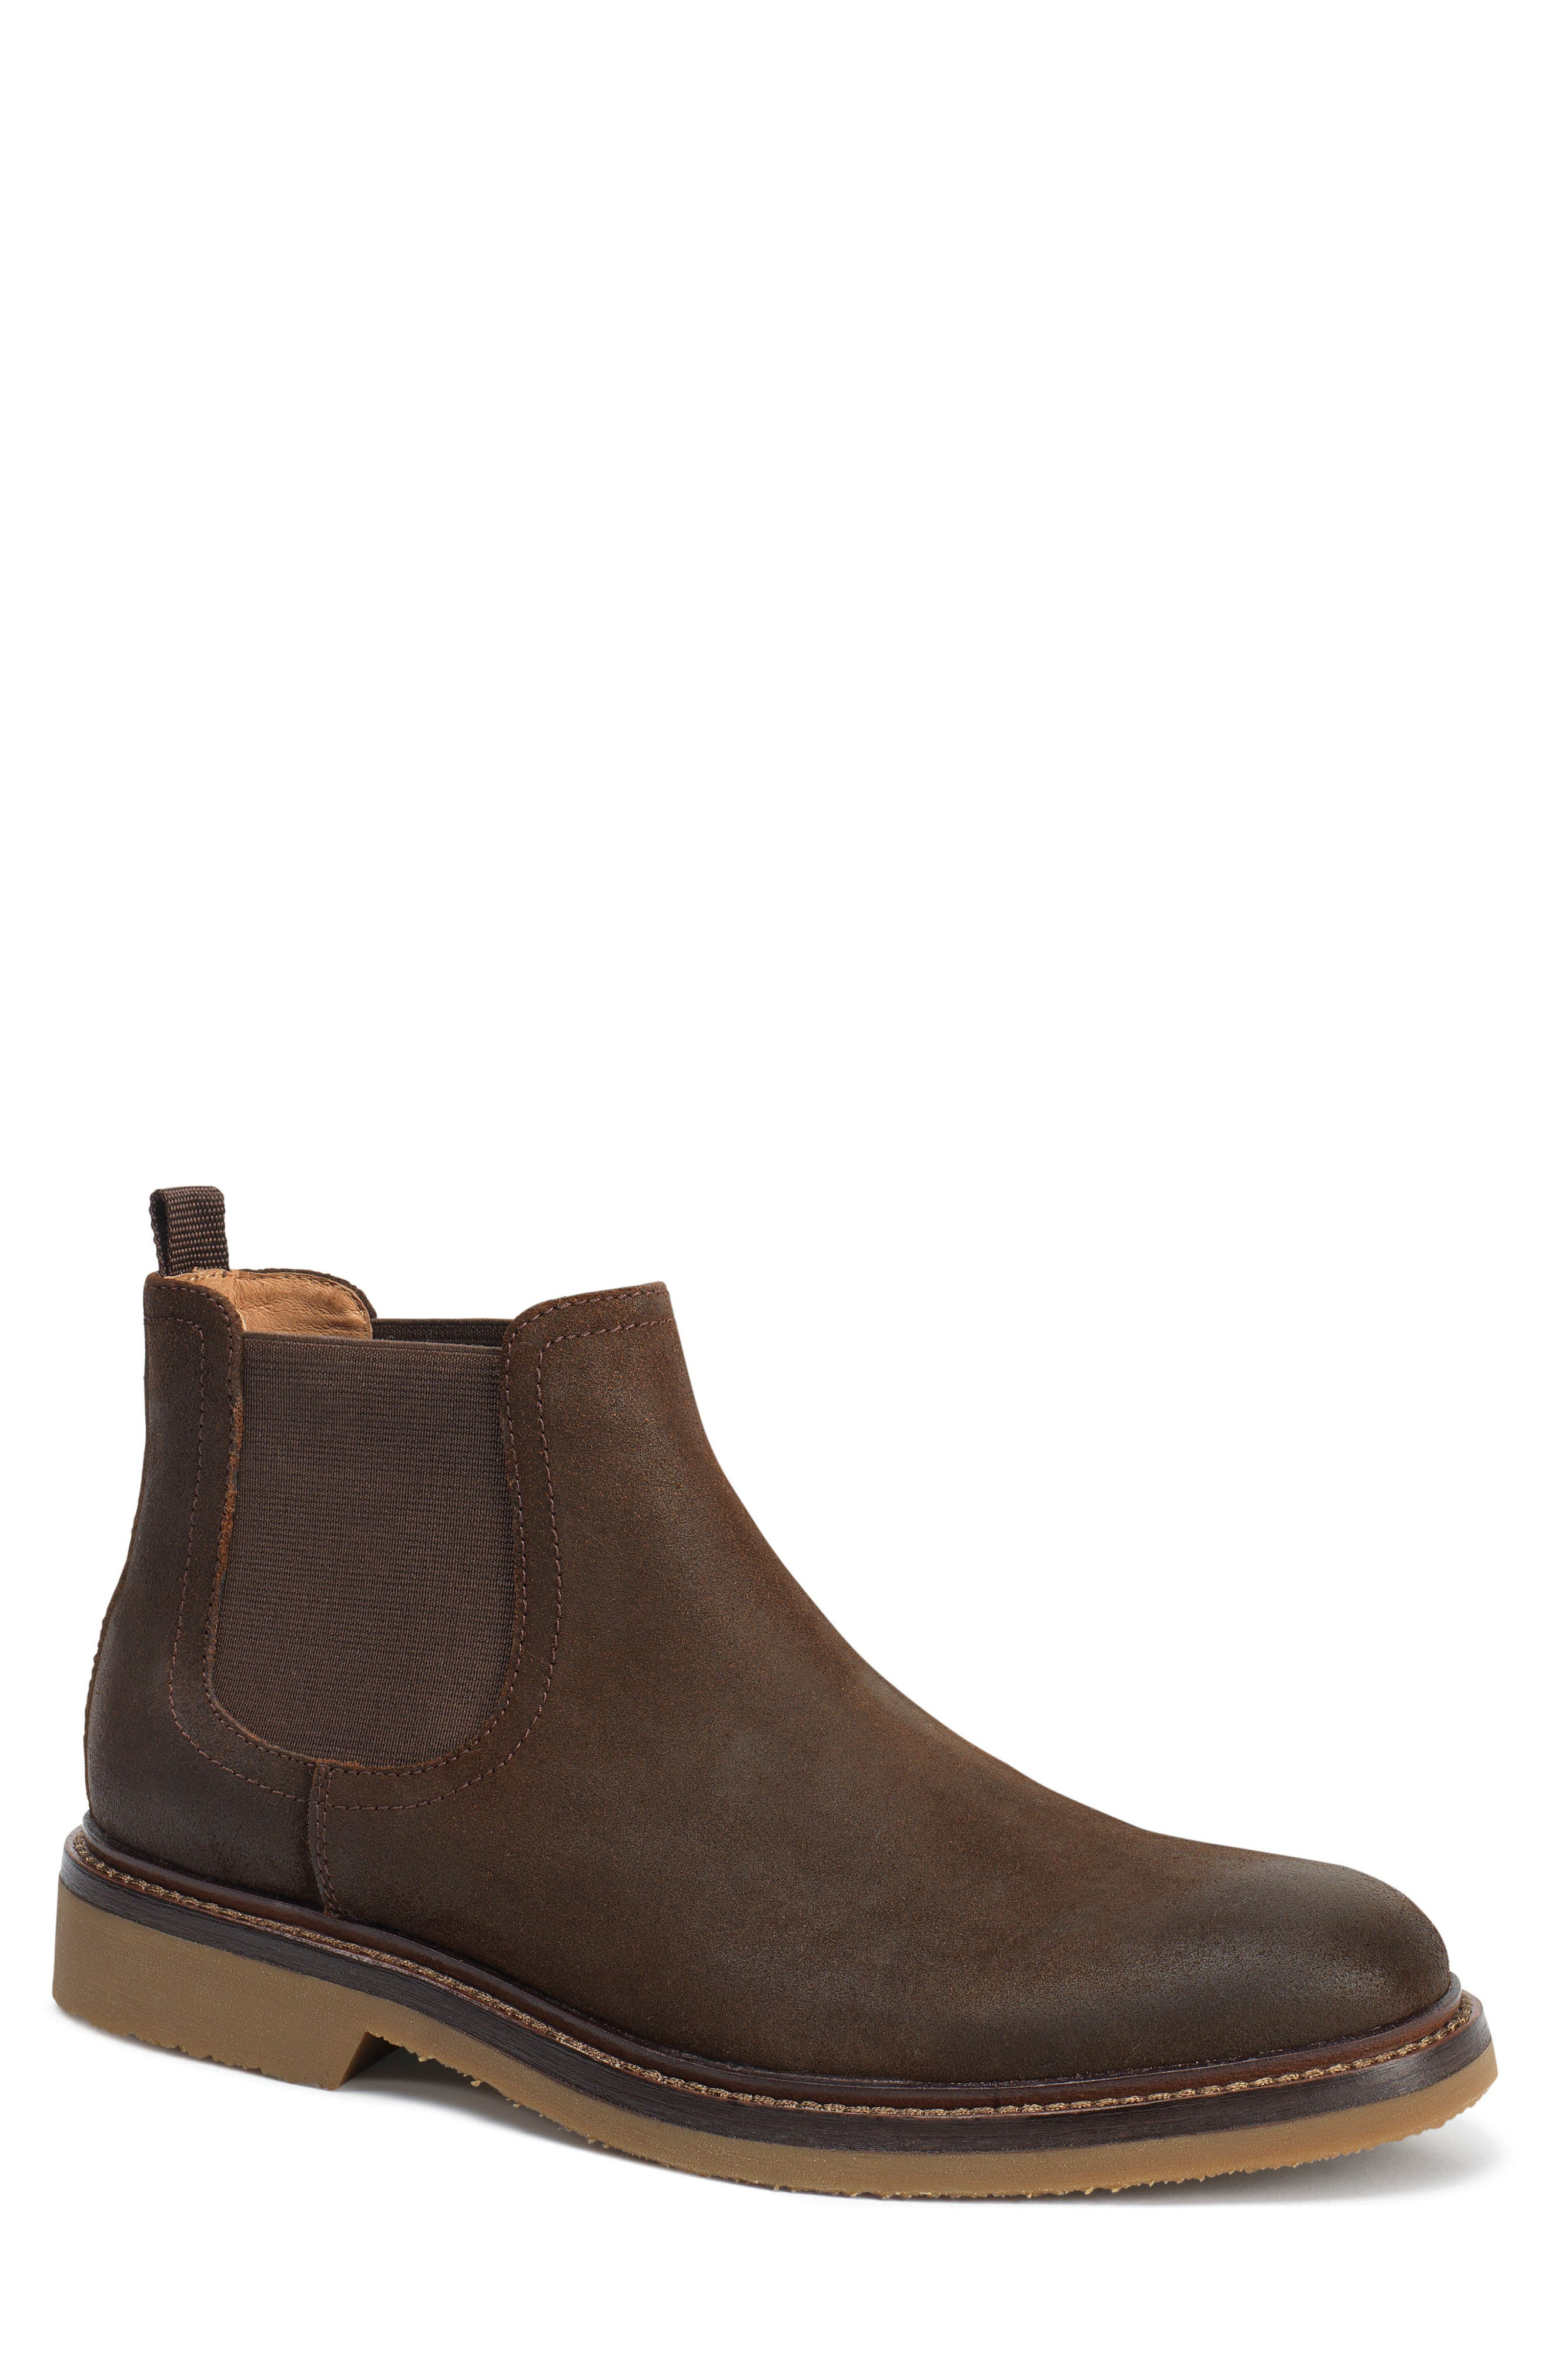 Carter Chelsea Boot,                         Main,                         color, Snuff Waxed Suede